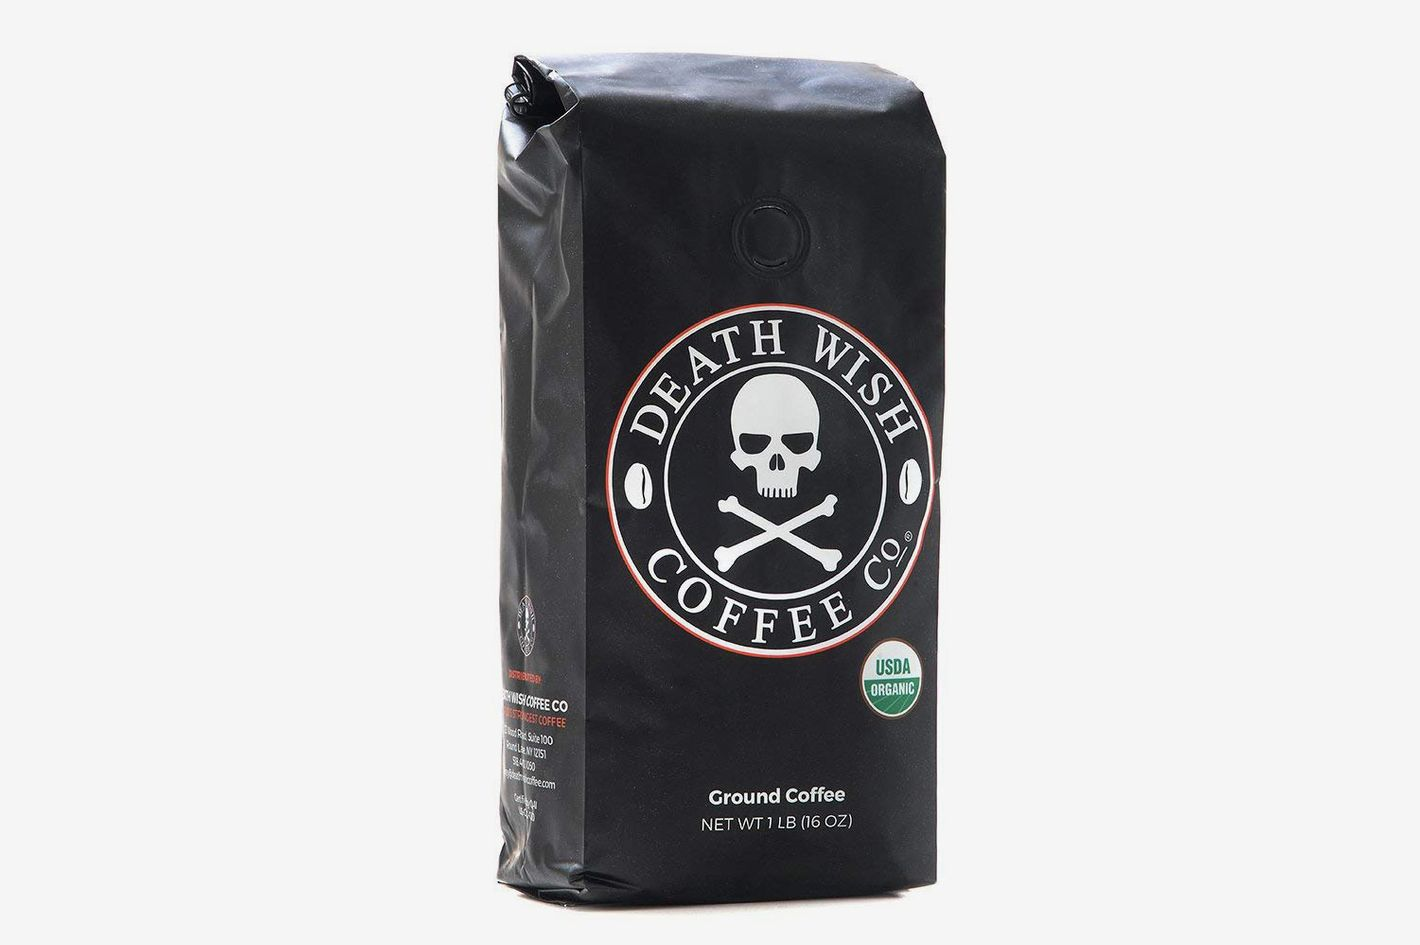 Death Wish Ground Coffee, 16 Ounces